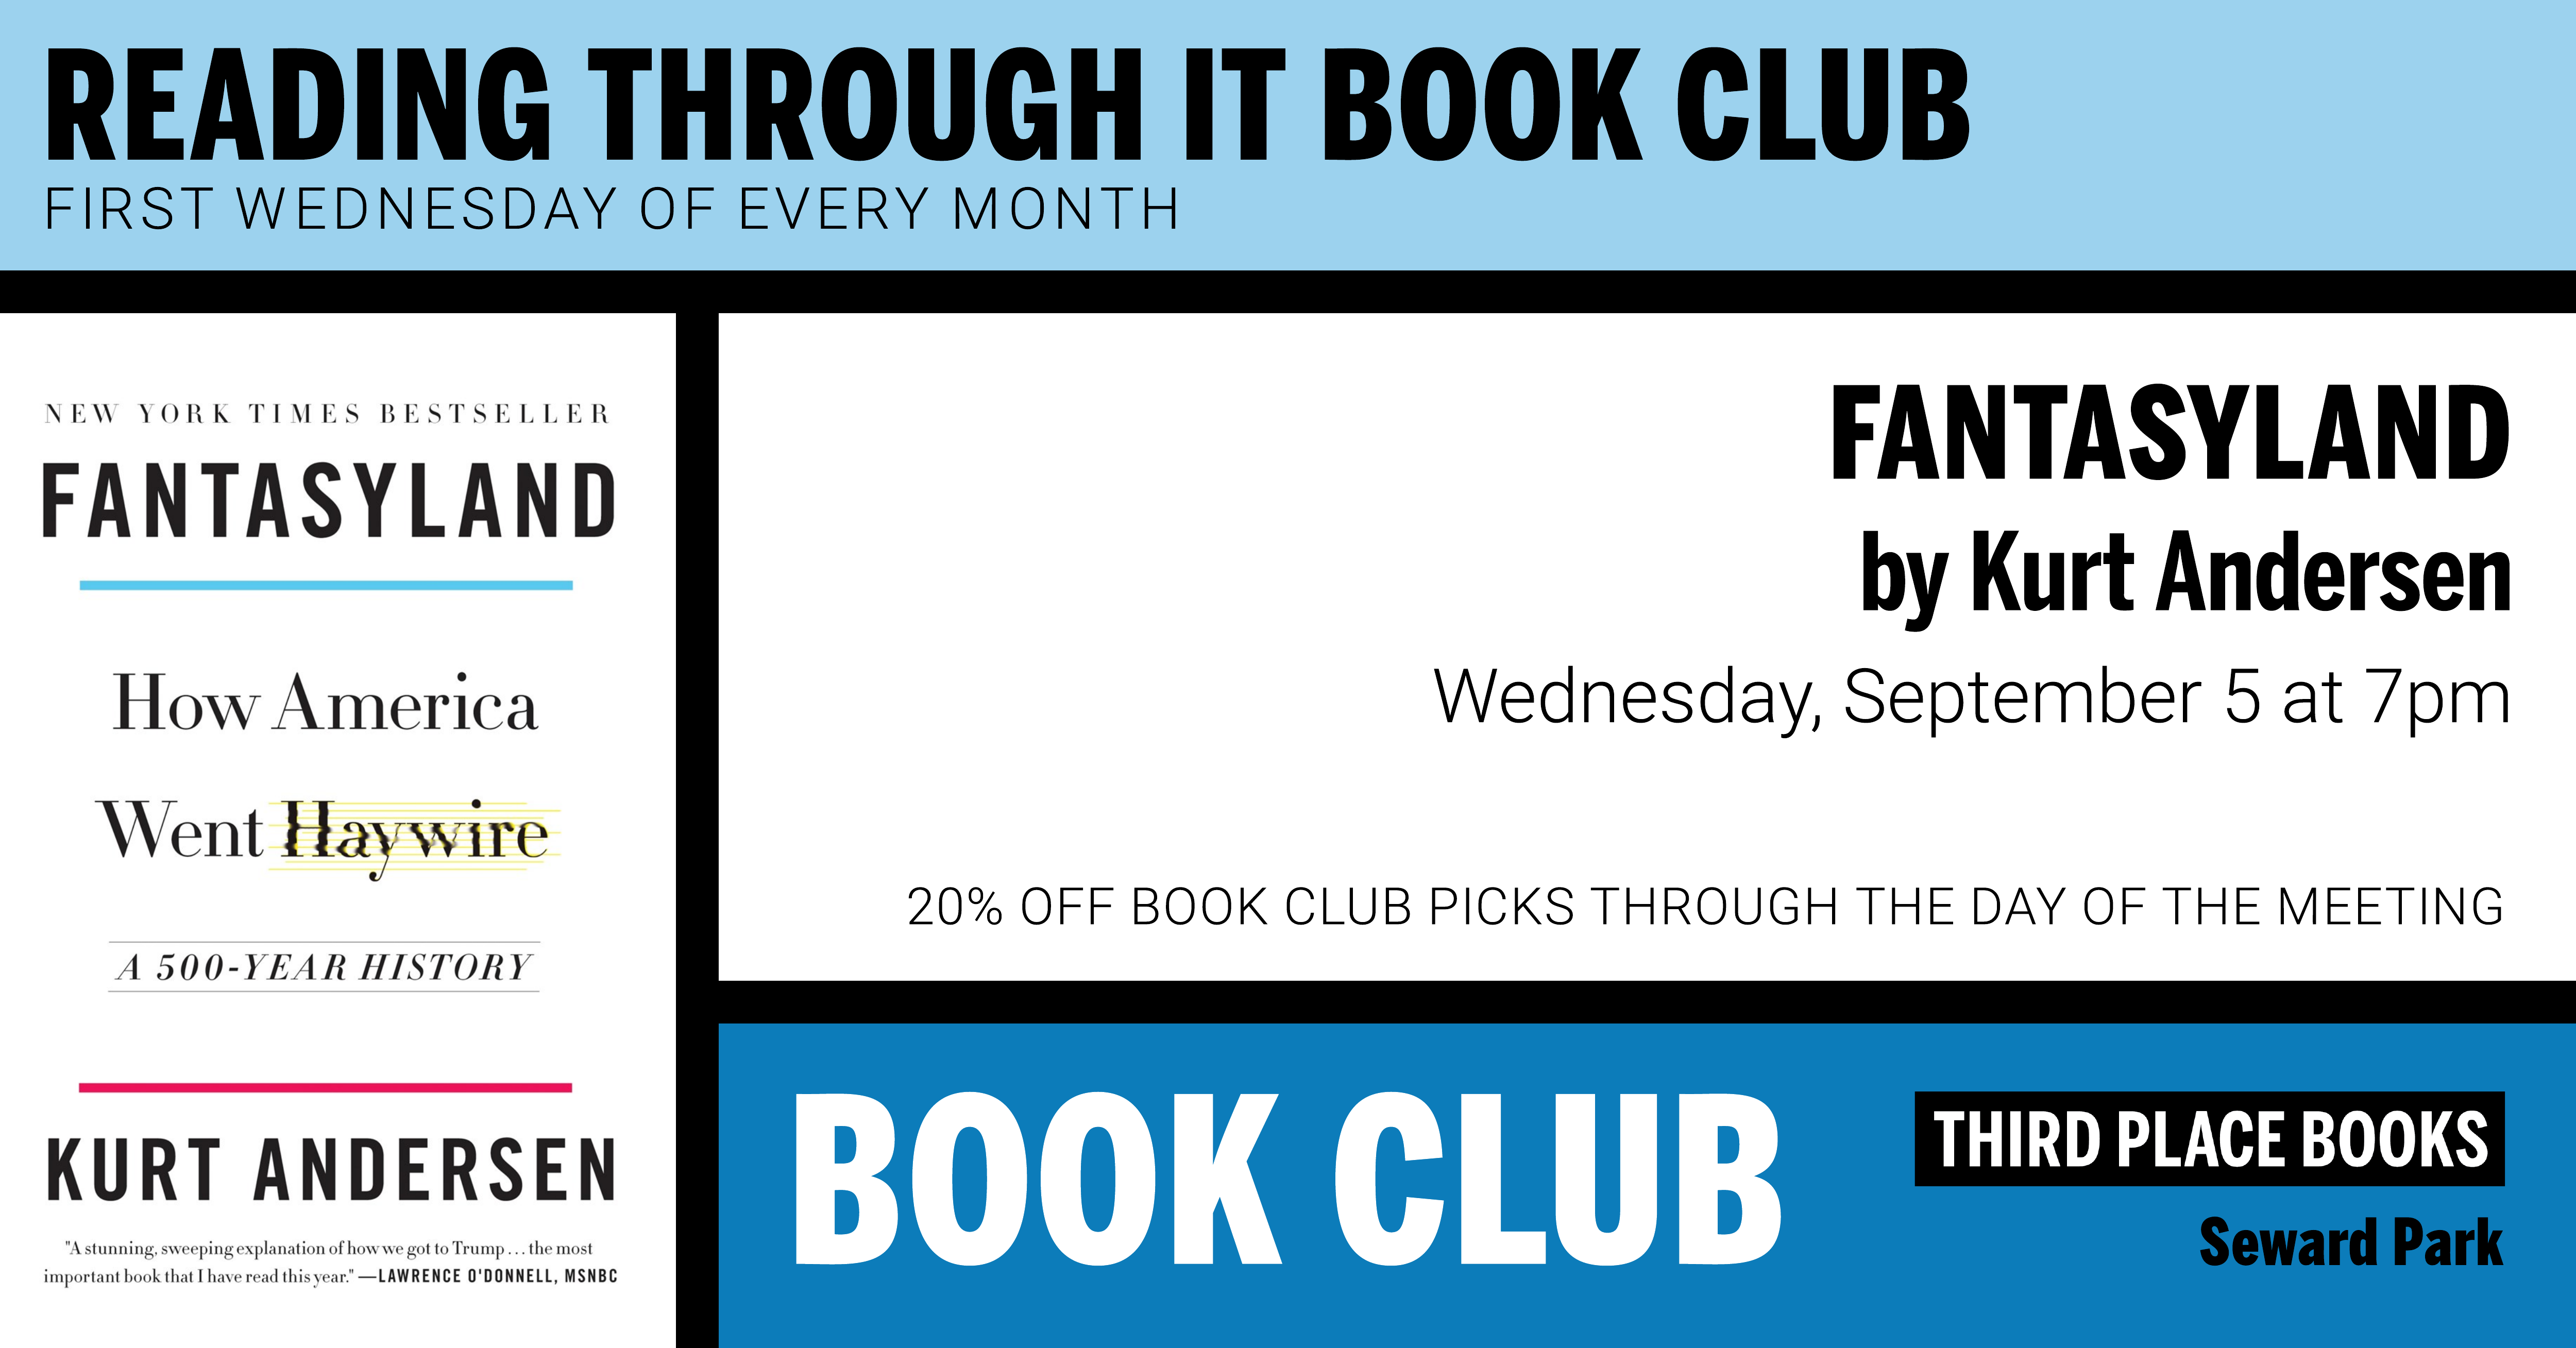 Reading Through It Book Club discussing Fantasyland on Wednesday, September 5 at 7pm